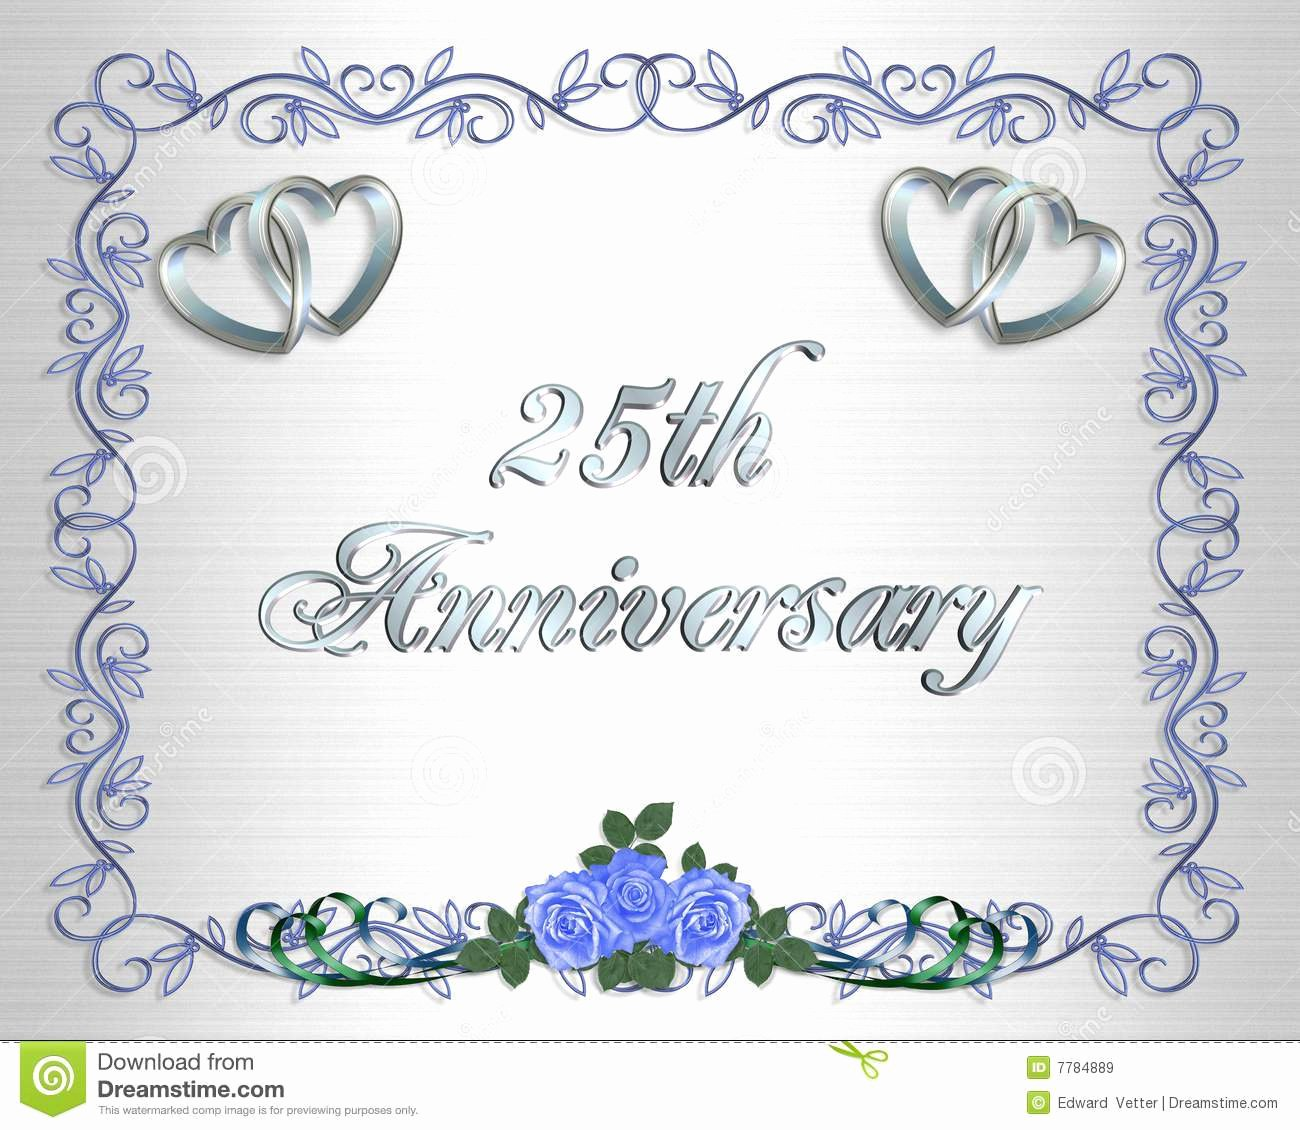 Wedding Anniversary Invitation Template Unique Wedding Anniversary Invitation Template Free